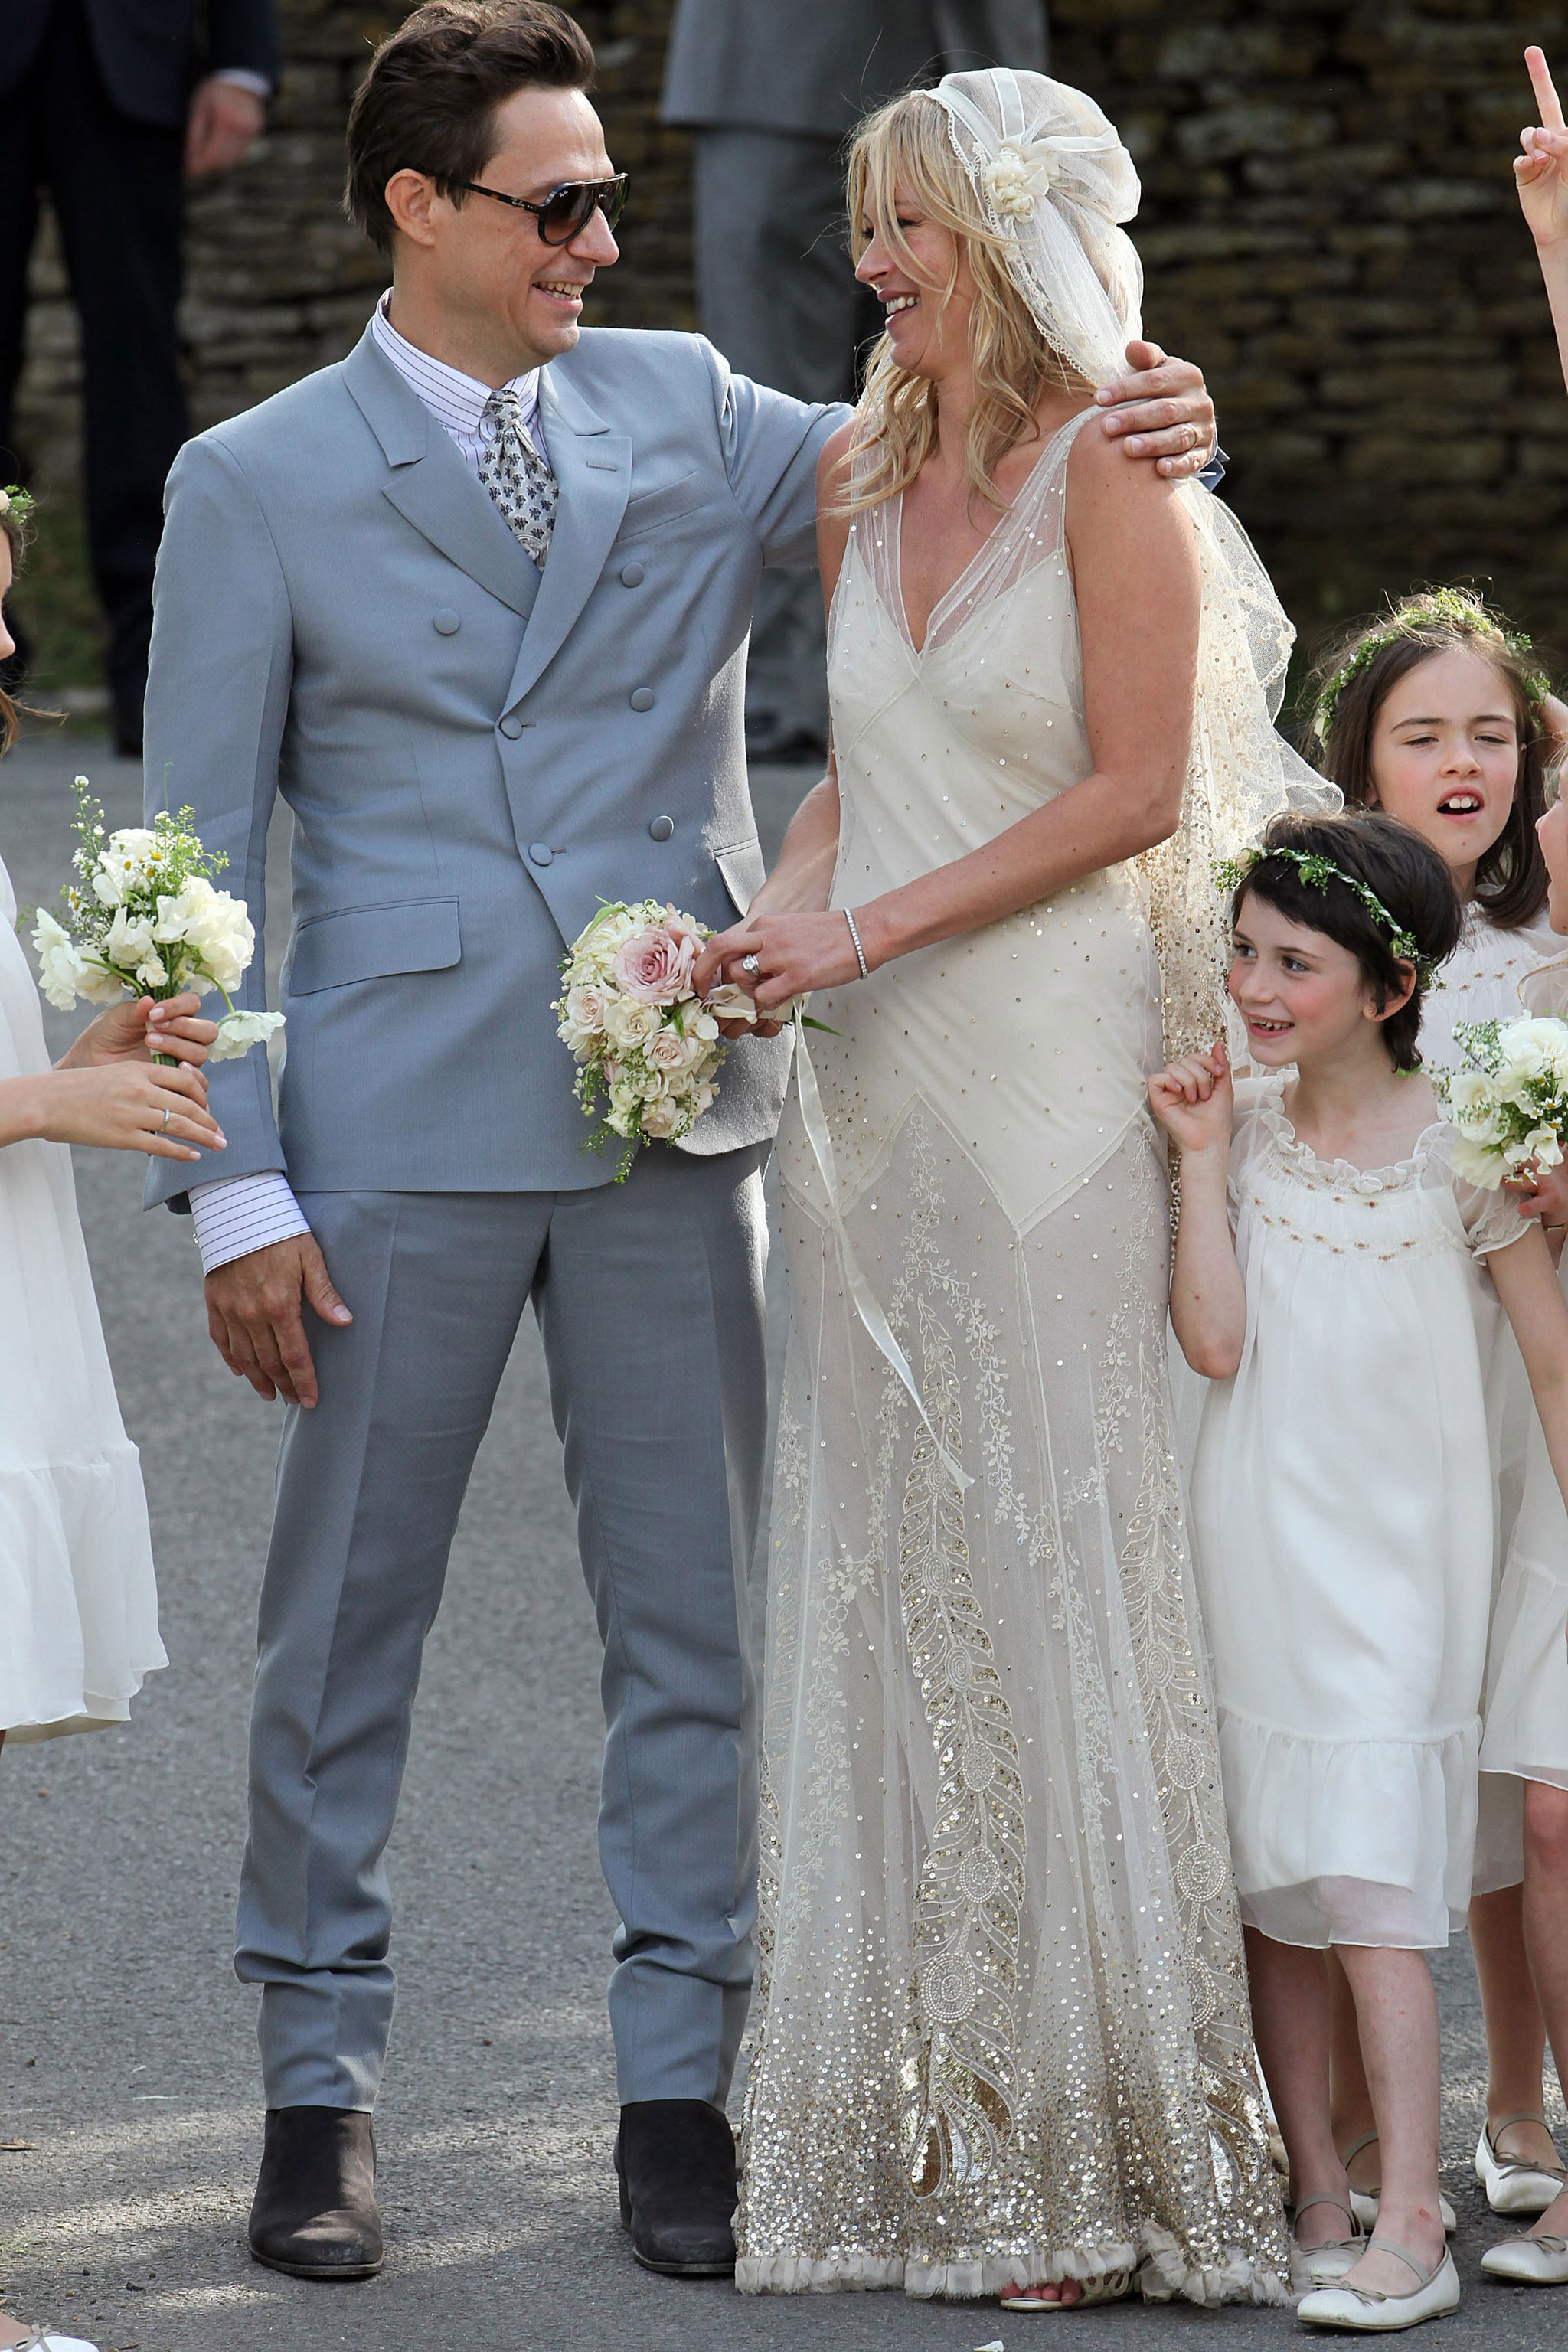 Kate Moss and Jamie Hince Wedding Pictures With Kate Moss Galliano ...